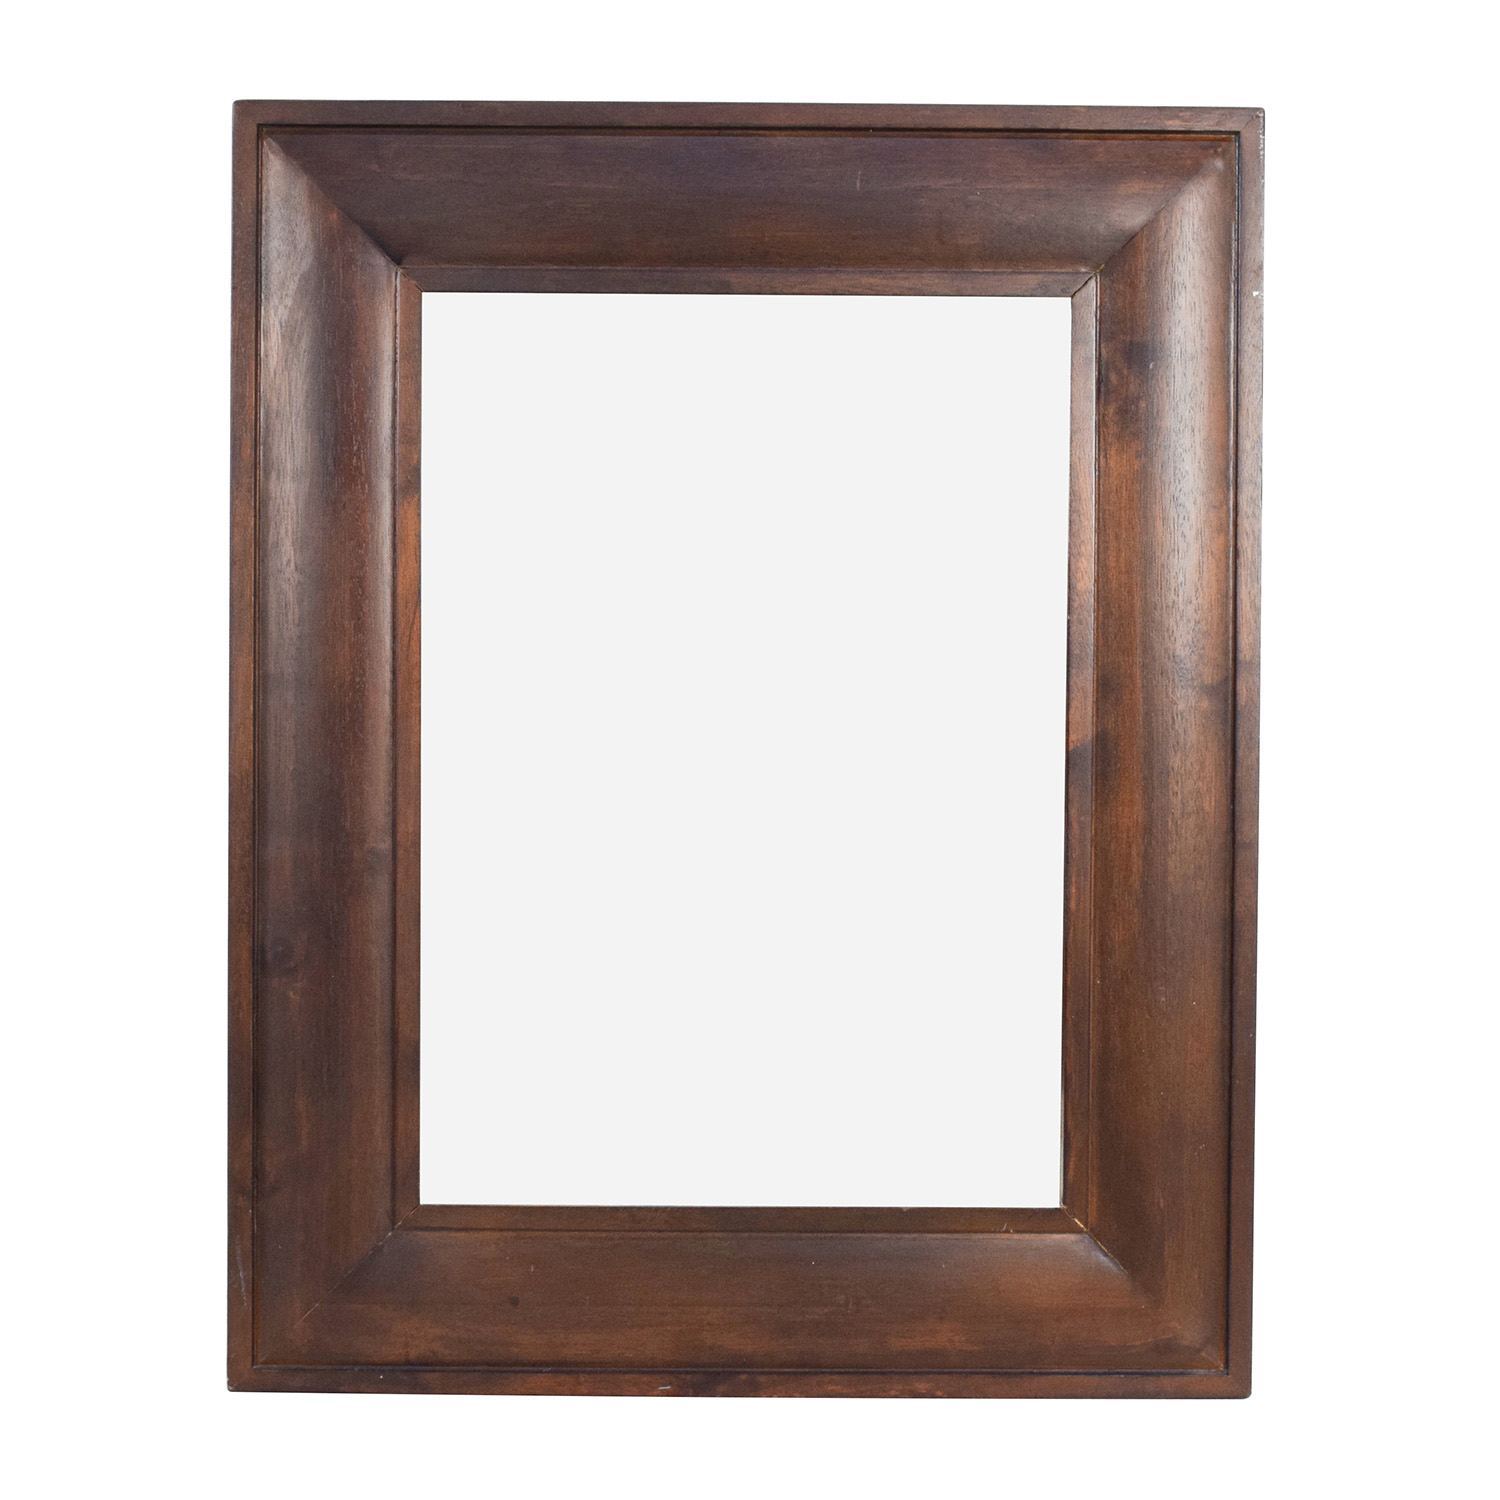 Square Wood Framed Hanging Mirror Brown